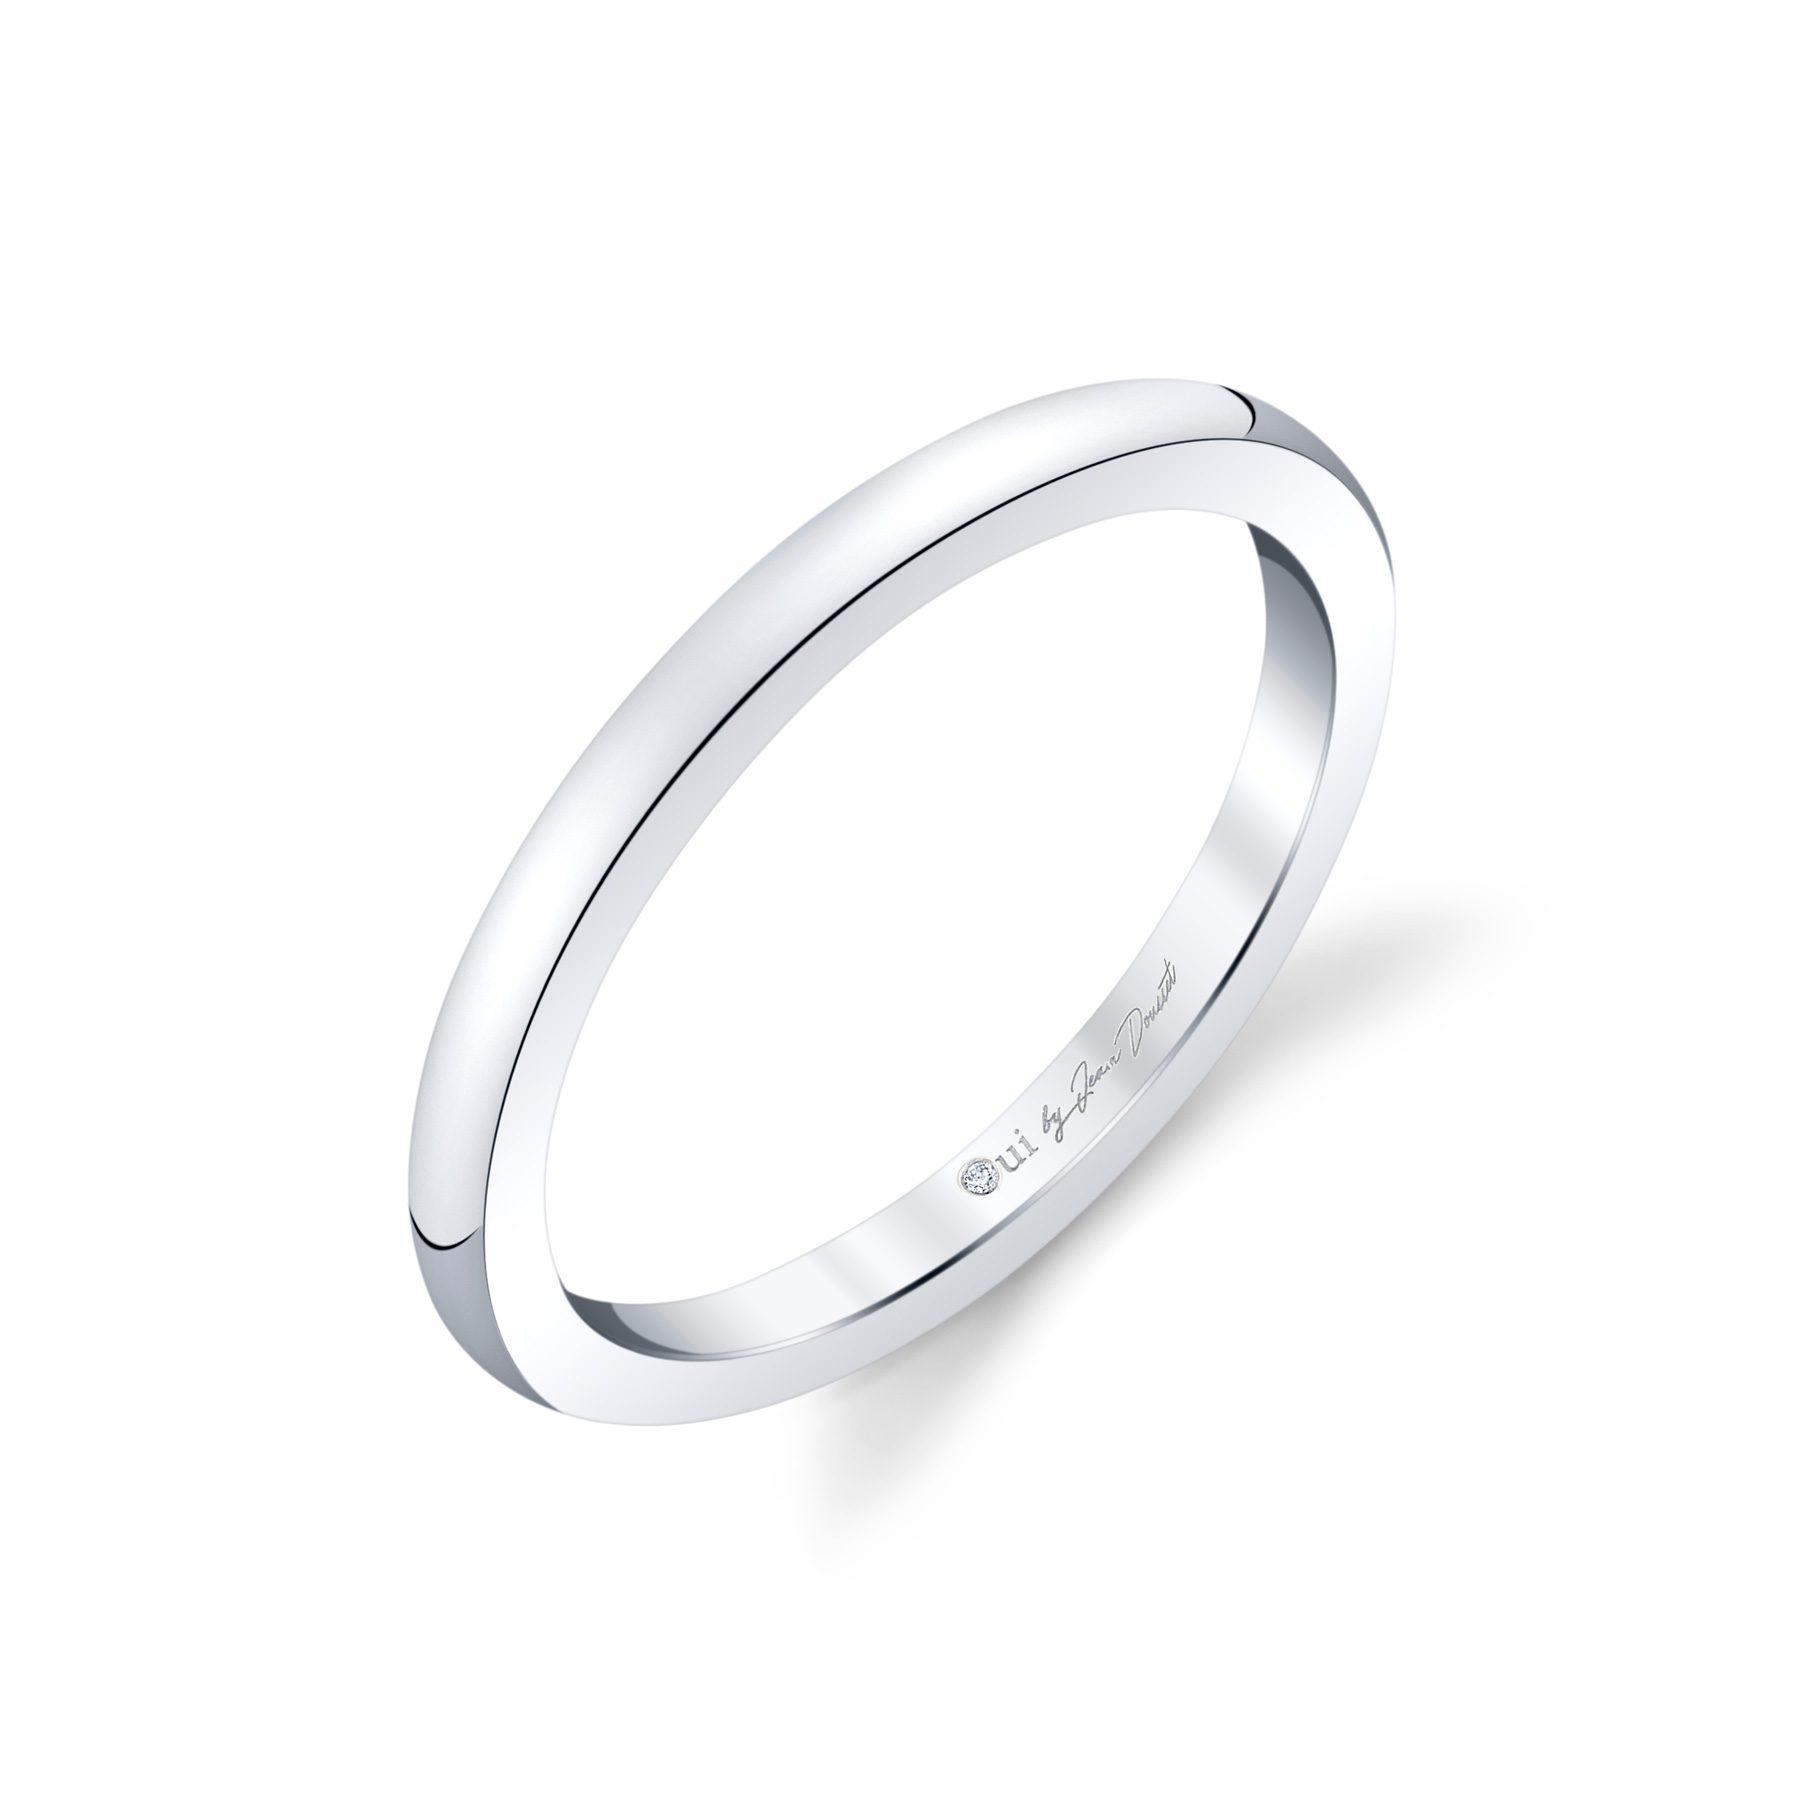 Colette Women's Wedding Band in solid metal in Platinum Standing View by Oui by Jean Dousset